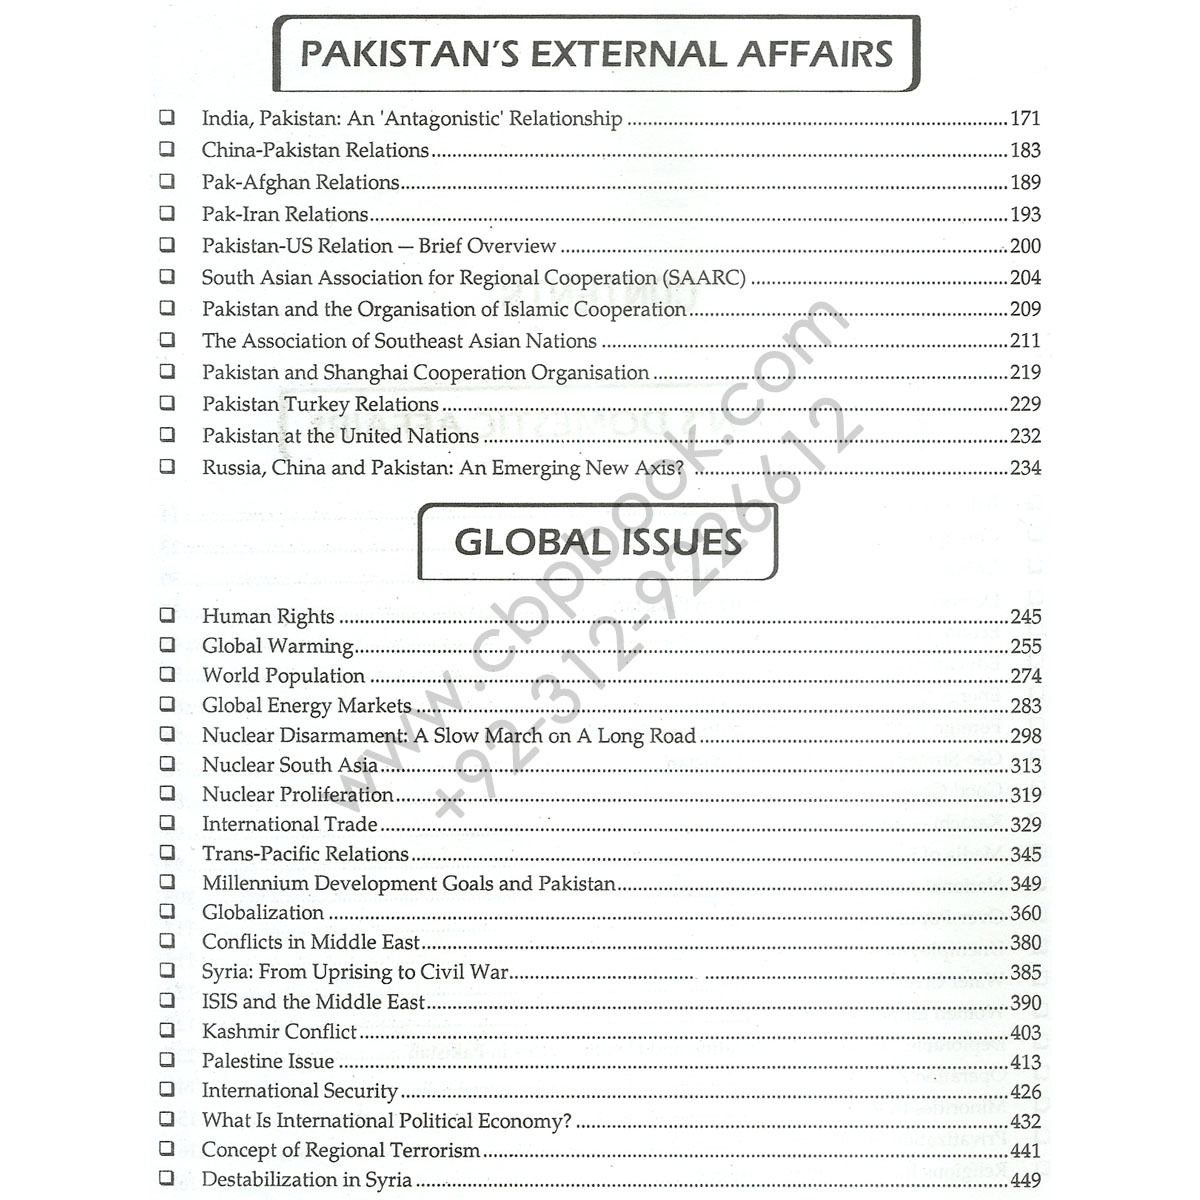 jahangir worldtimes to the point current affairs for css 2017 jahangir worldtimes to the point current affairs for css 2017 2